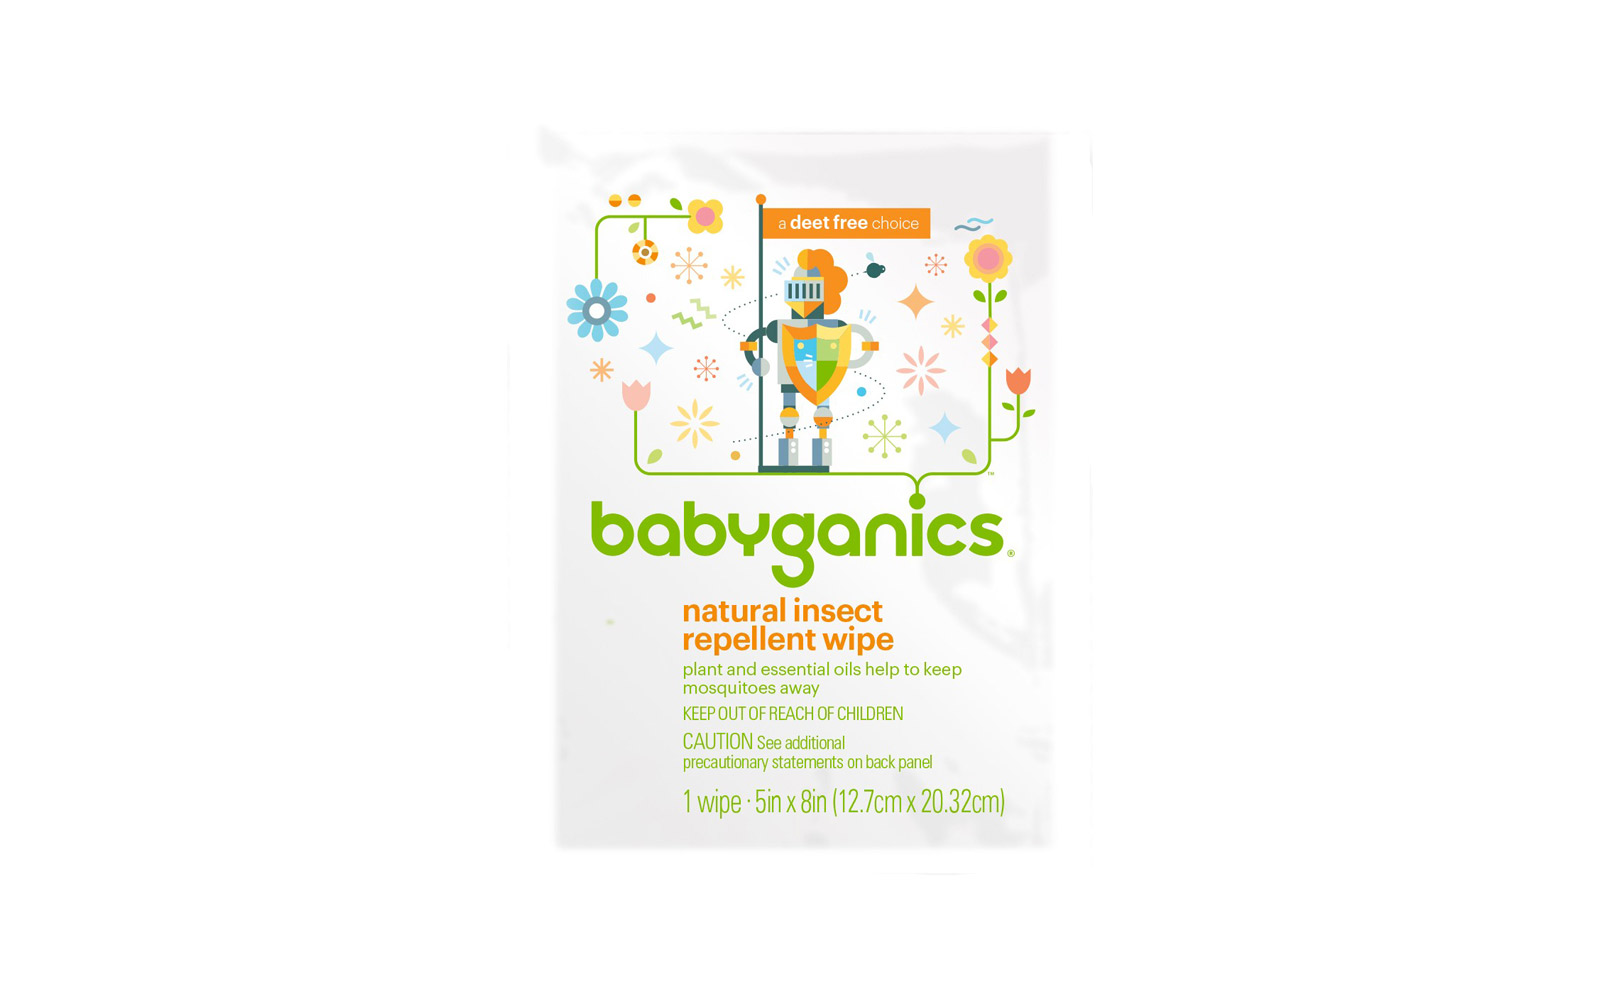 Babyganics Personal Insect Repellent Wipes